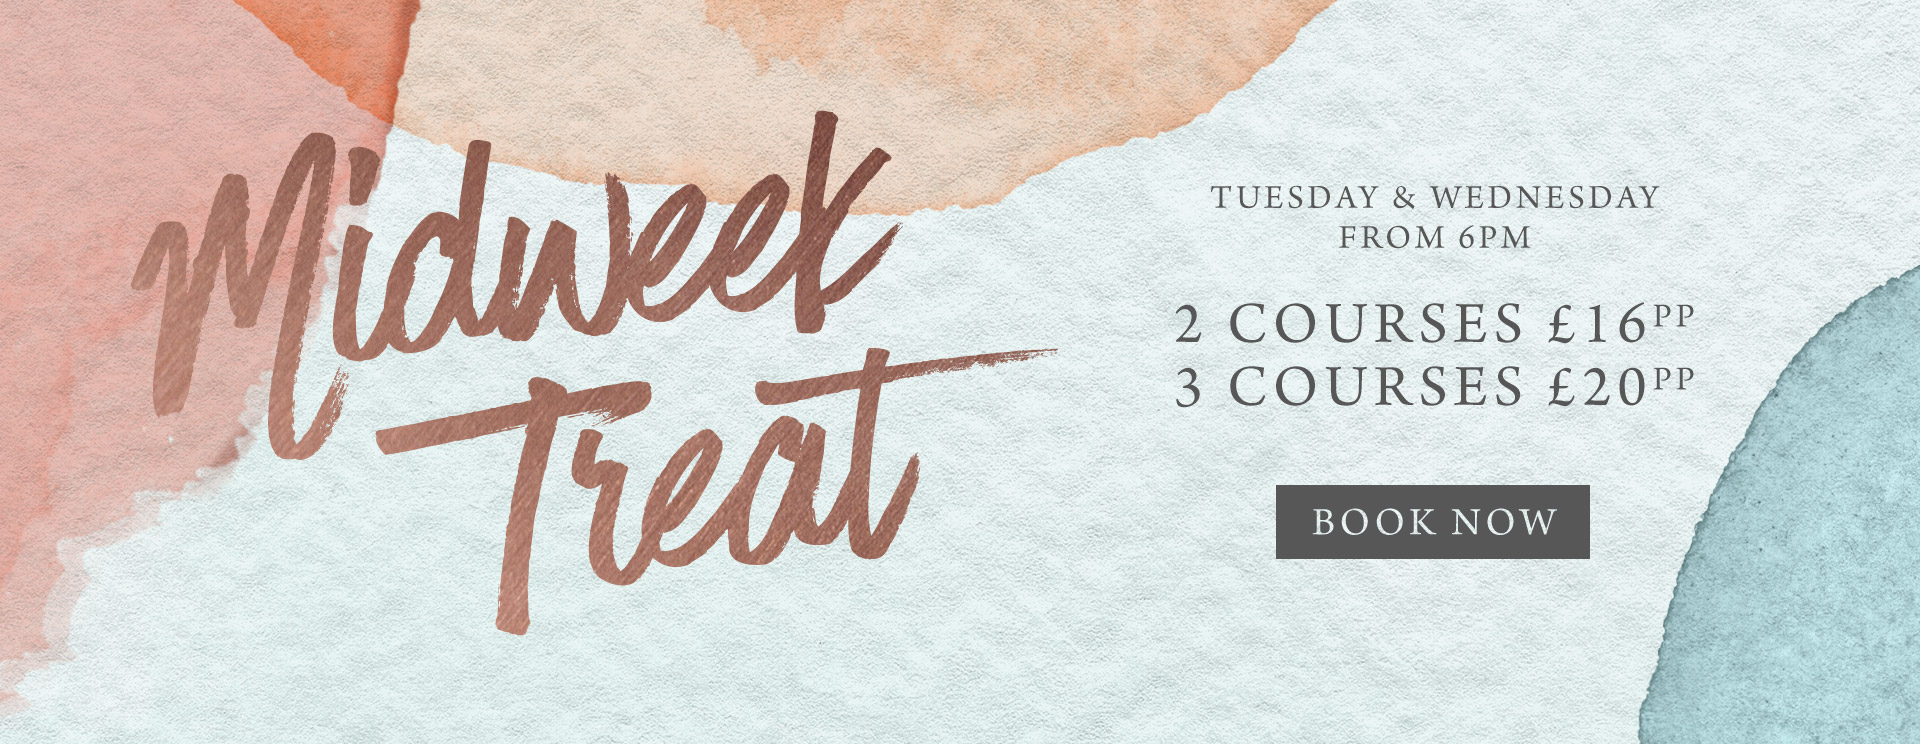 Midweek treat at The Hawk - Book now